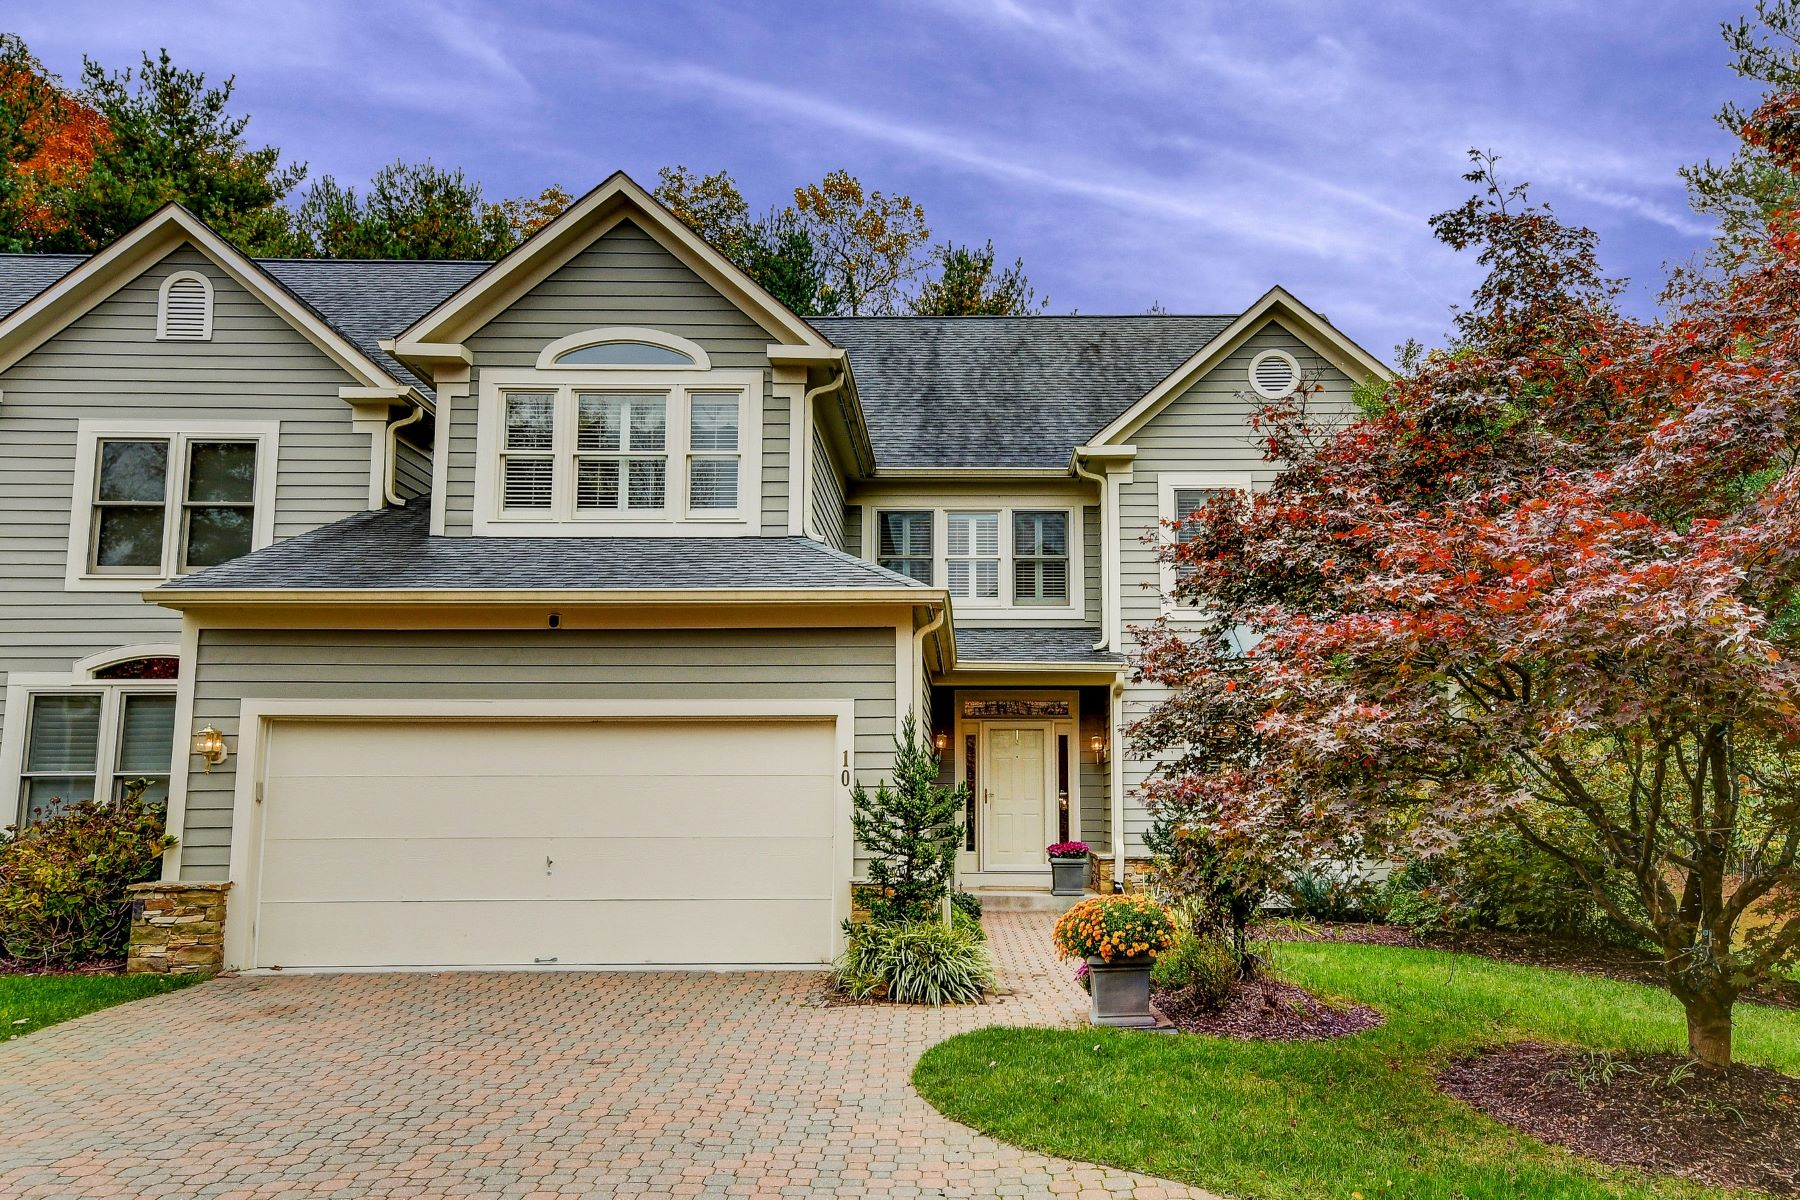 Single Family Homes for Sale at Pebblecreek 10 Sawgrass Court, Lutherville Timonium, Maryland 21093 United States